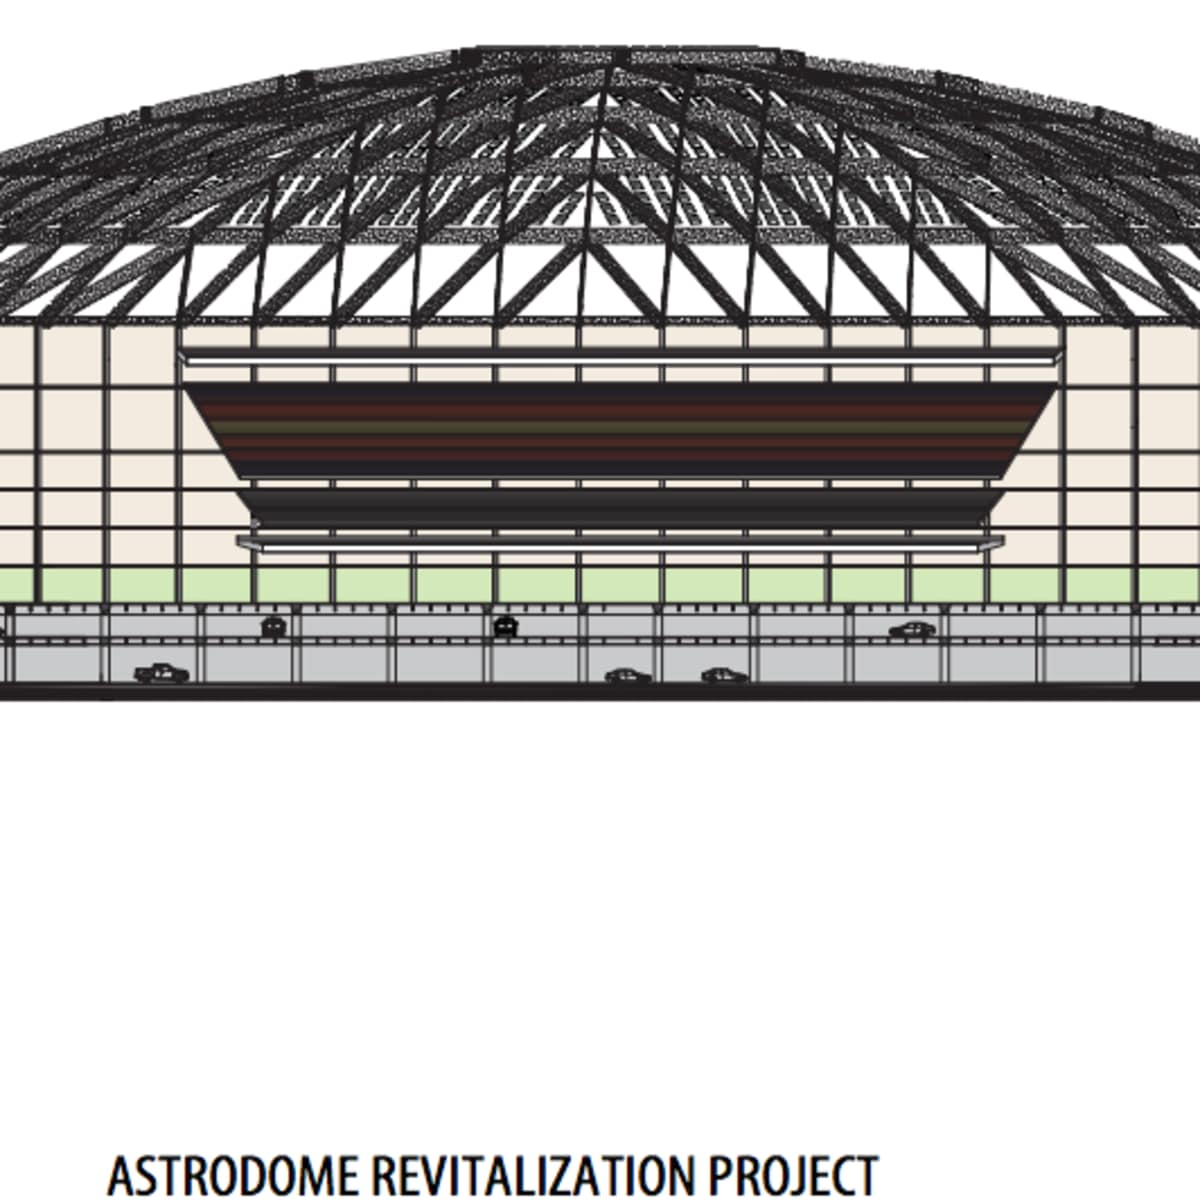 Proposed Astrodome changes June 2016